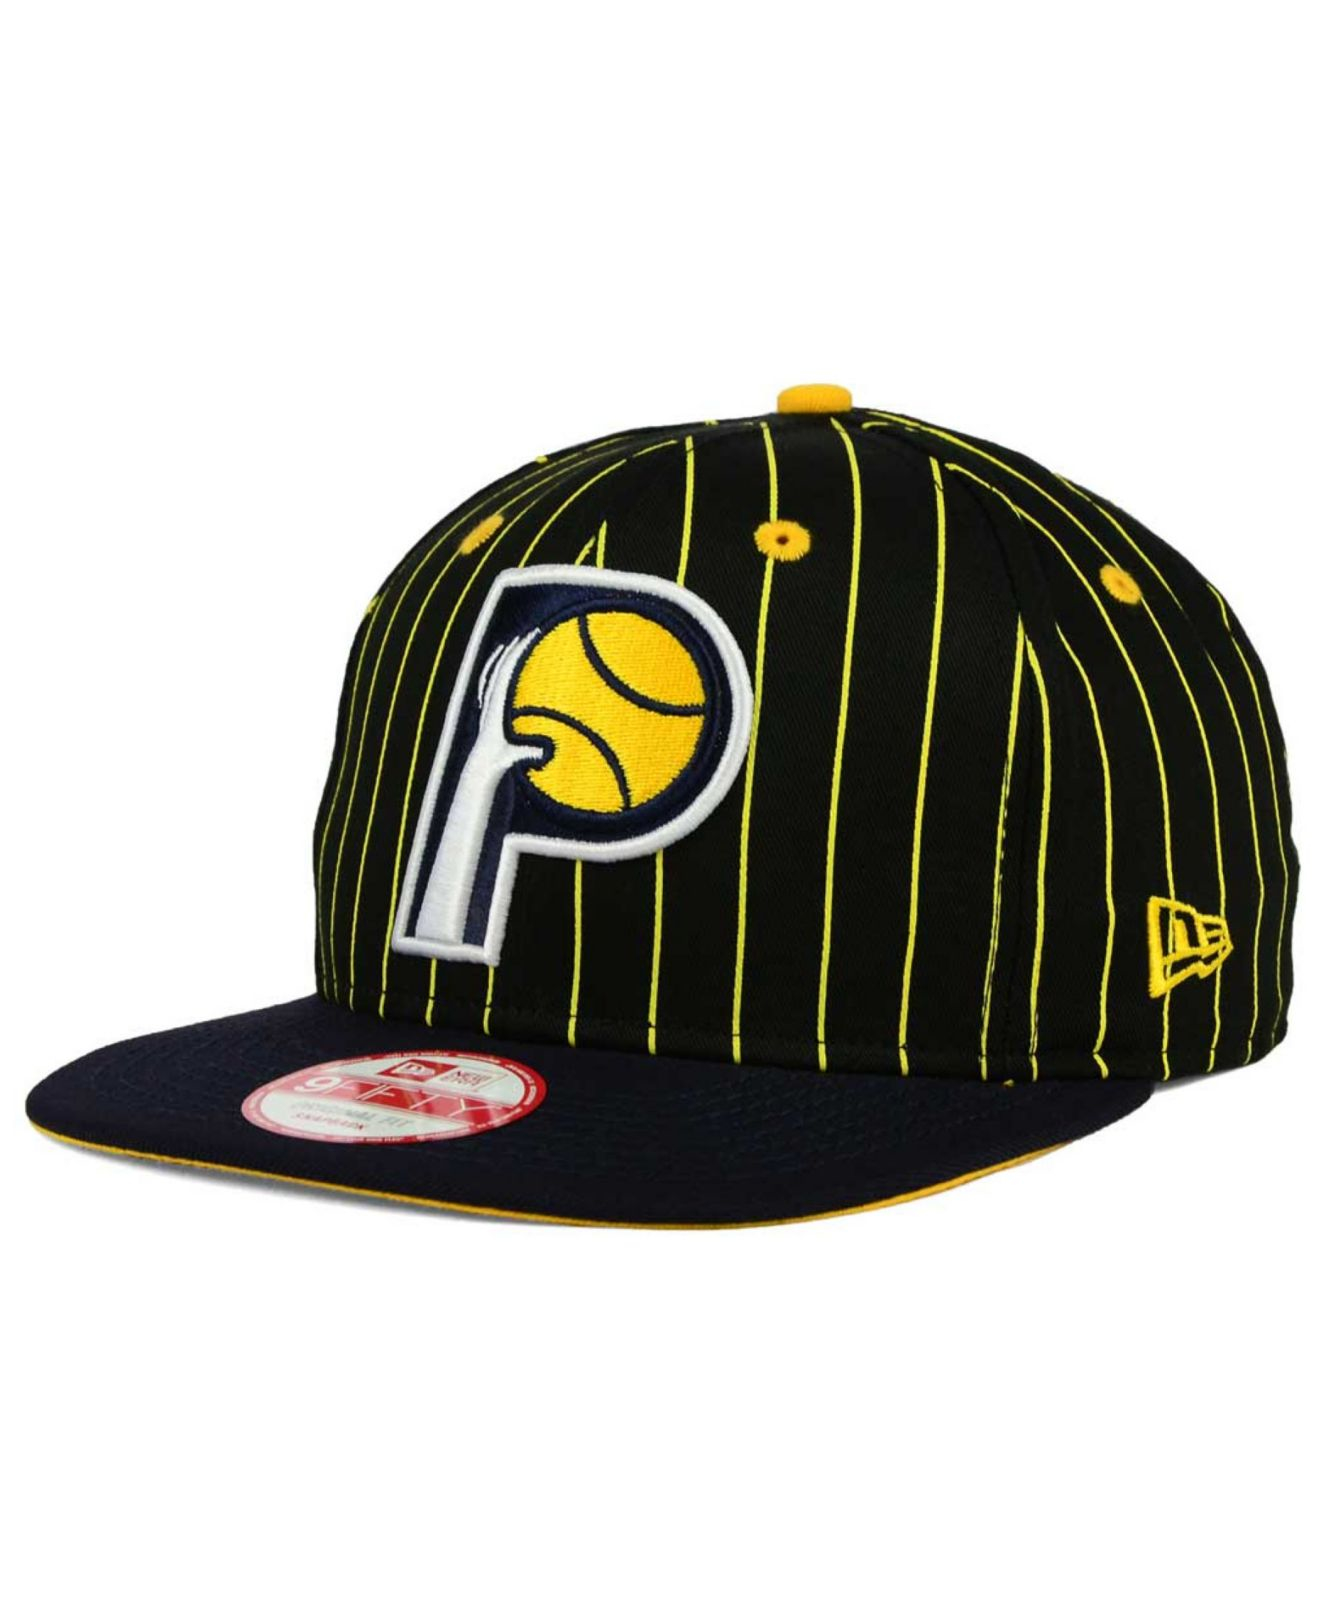 new style 831c8 2c884 KTZ Indiana Pacers Vintage Pinstripe 9fifty Snapback Cap in Black ...